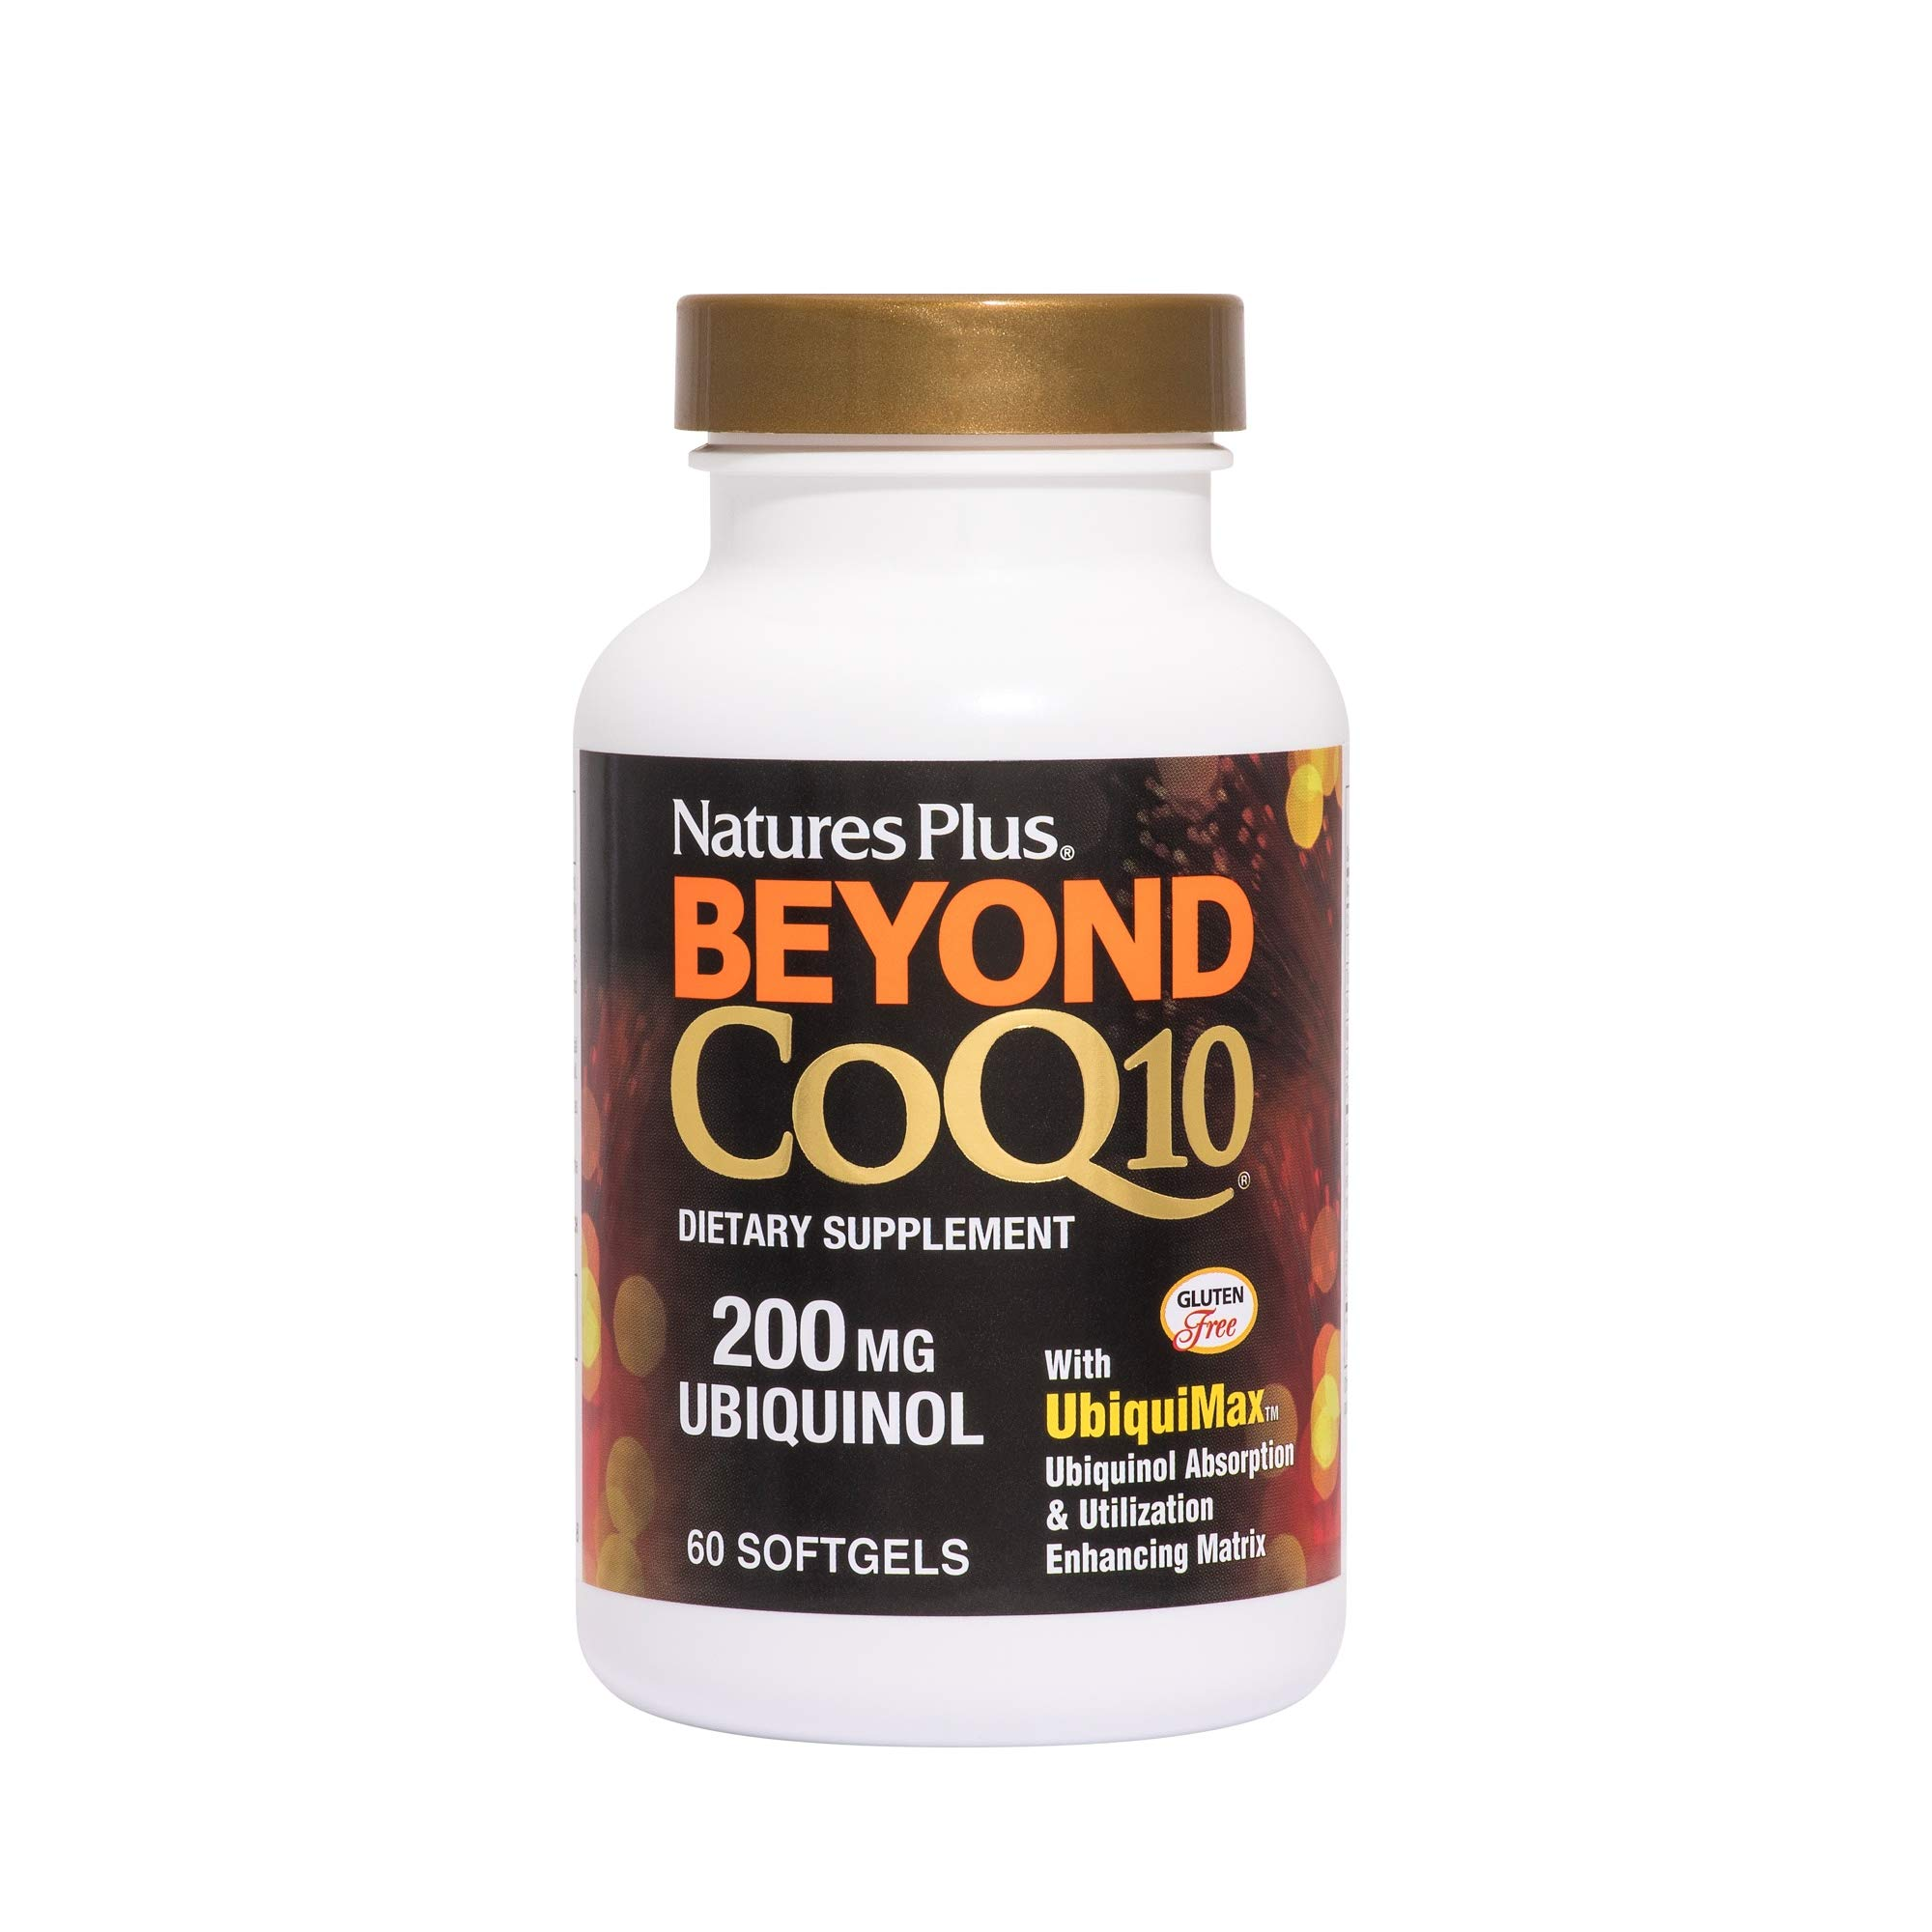 NaturesPlus Beyond CoQ10-200 mg Ubiquinol - 60 Easy to Swallow Softgels - High Potency, High Absorption Supplement, Promotes Heart Health, Antioxidant - 60 Servings